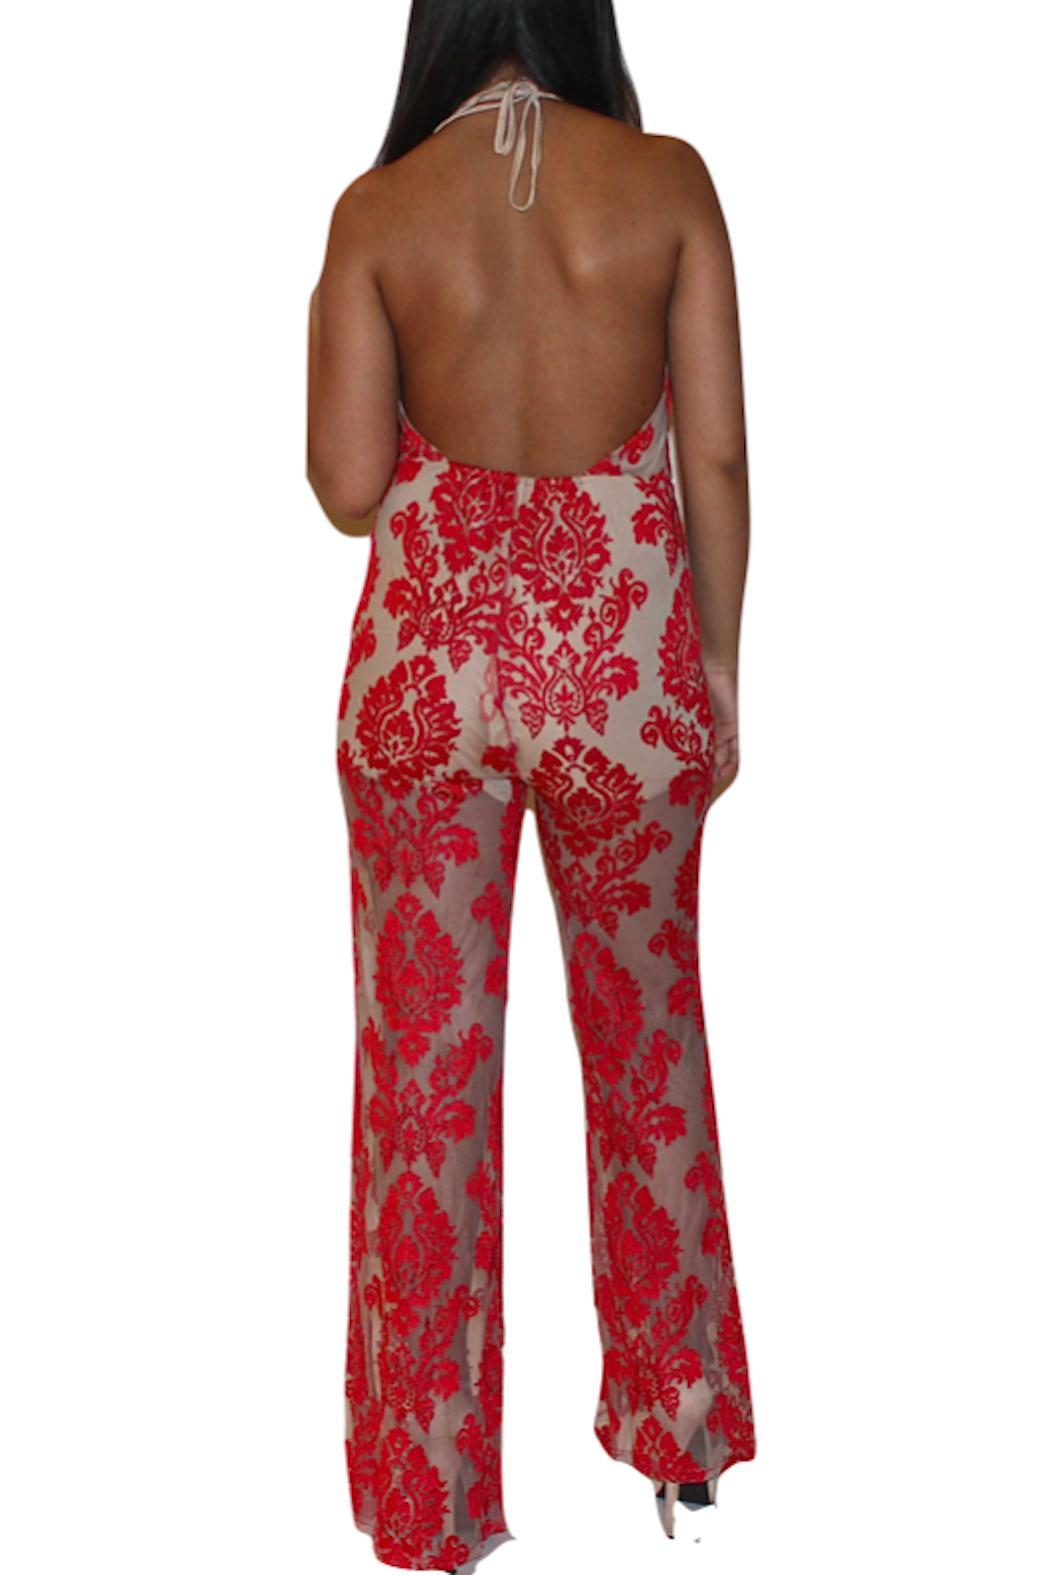 Nurielle Red Lace Jumpsuit from Miami — Shoptiques